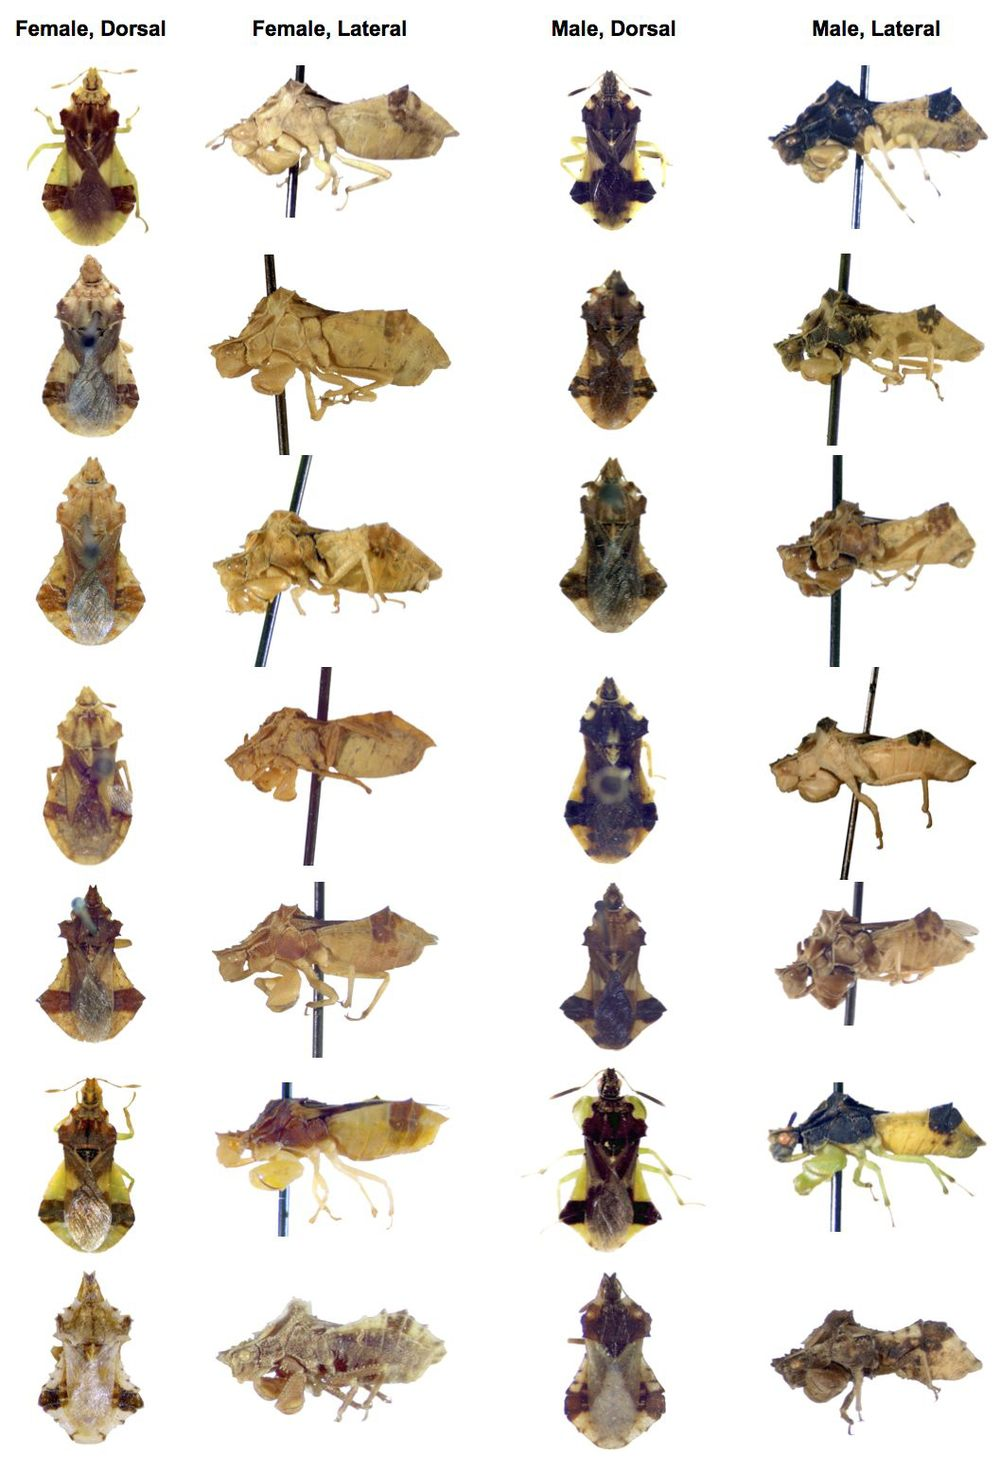 DIVERSITY.   There are over 100 species in the genus Phymata.  As you can see from this picture of 7 species and subspecies, size and colour differences between females (two left columns) and males (two right columns) are quite common.  We don't yet fully understand the evolutionary causes of these sex- and species-differences.